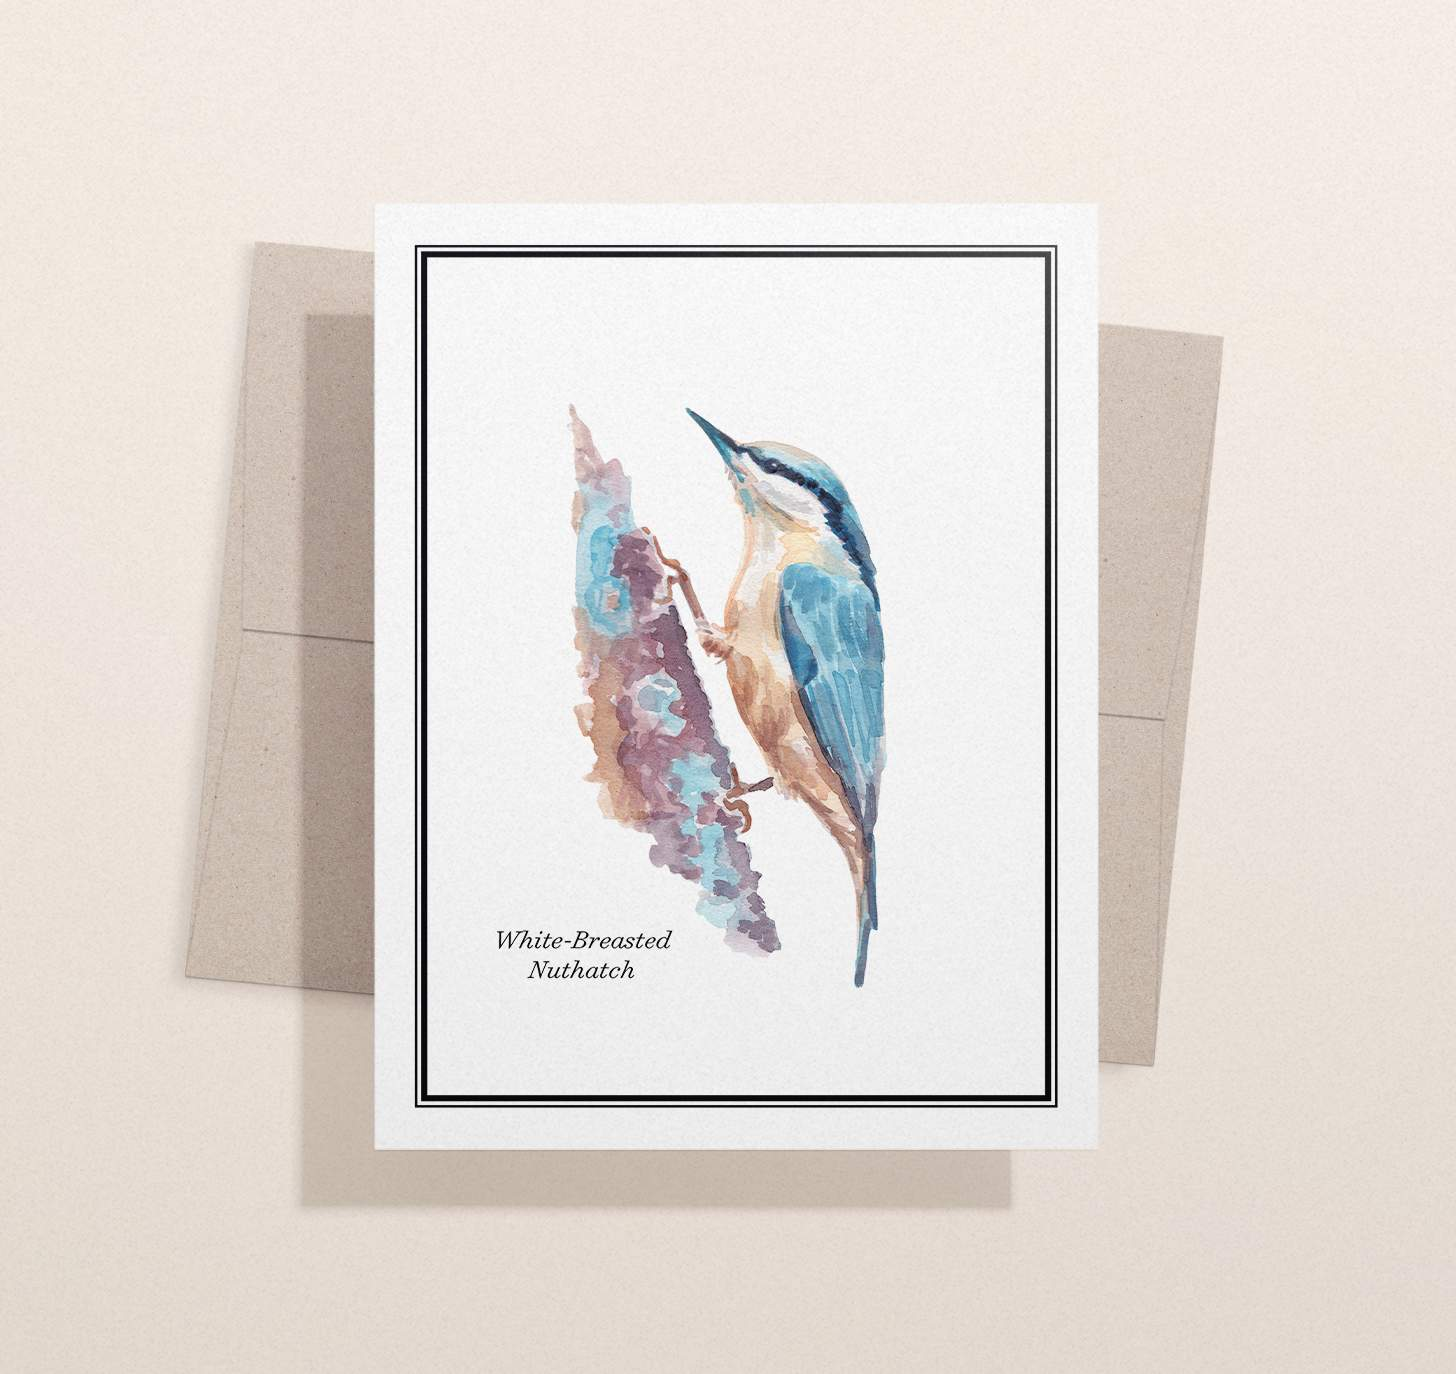 Blue and white bird sitting on brown branch design with brown envelope and light brown background